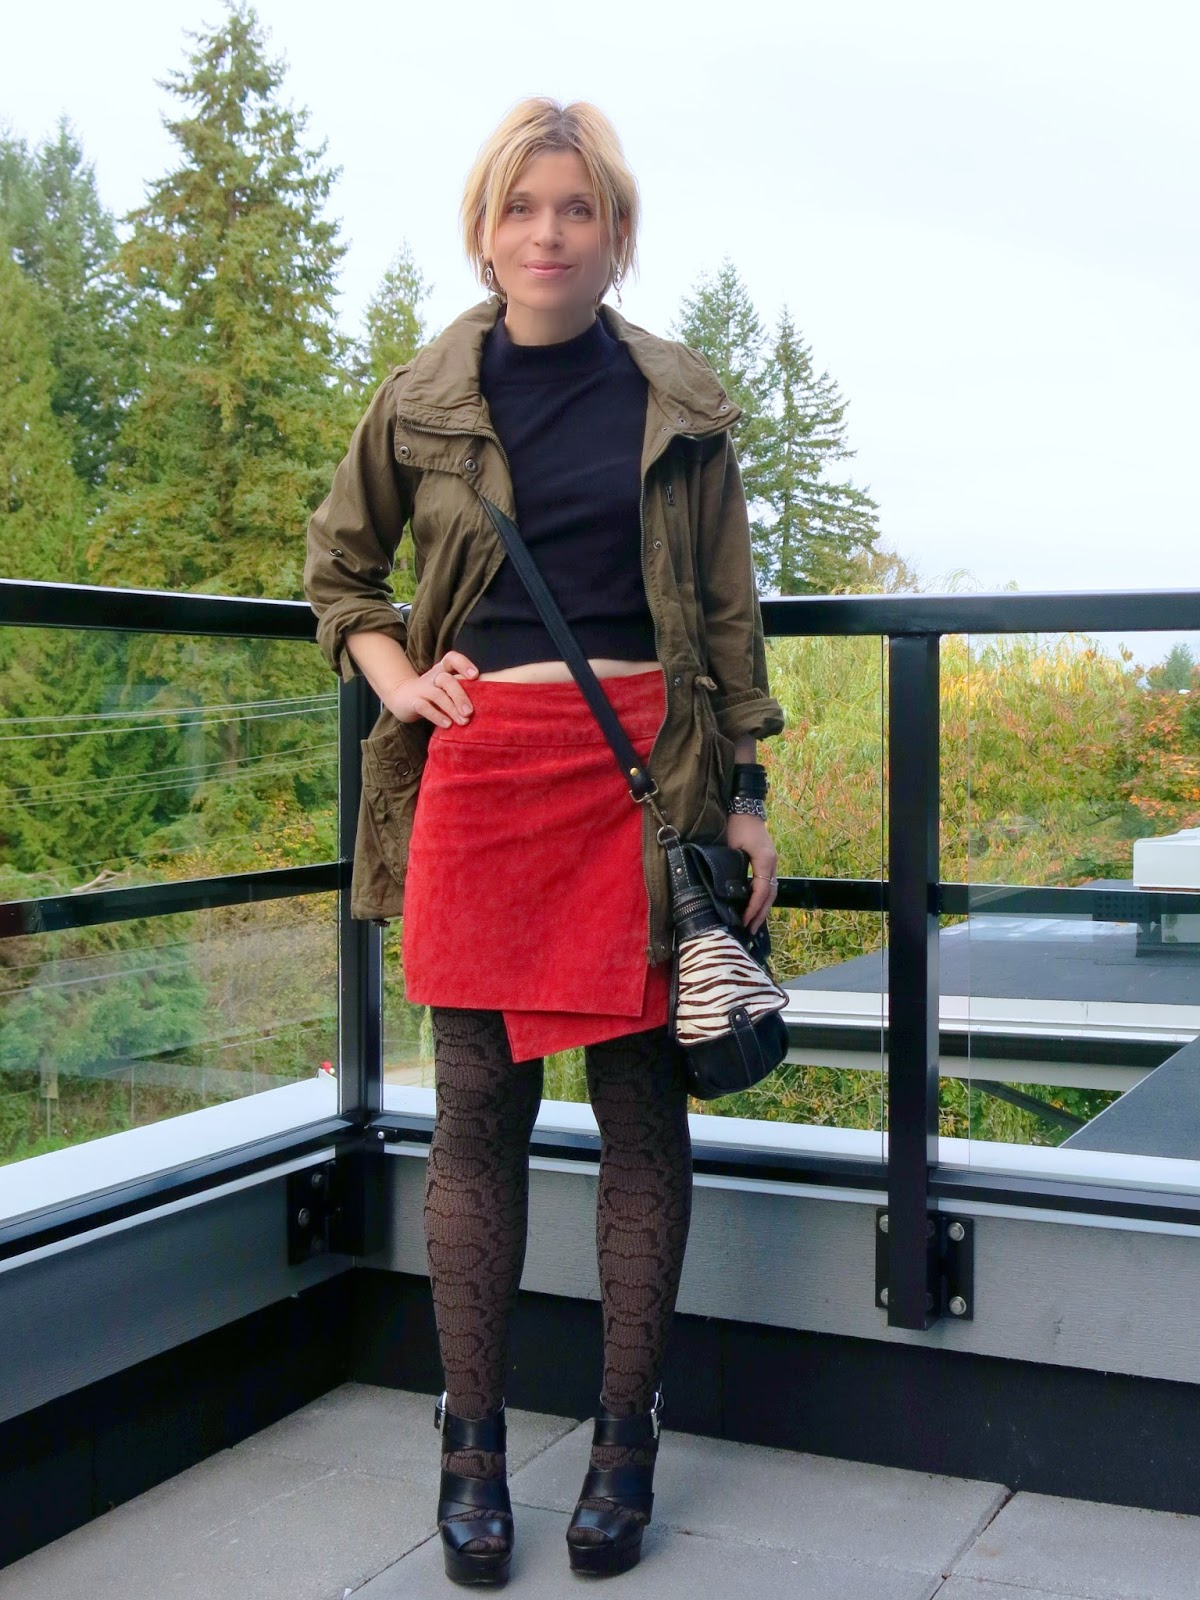 Vegging out:  a red suede mini-skirt with patterned tights and an army-style parka